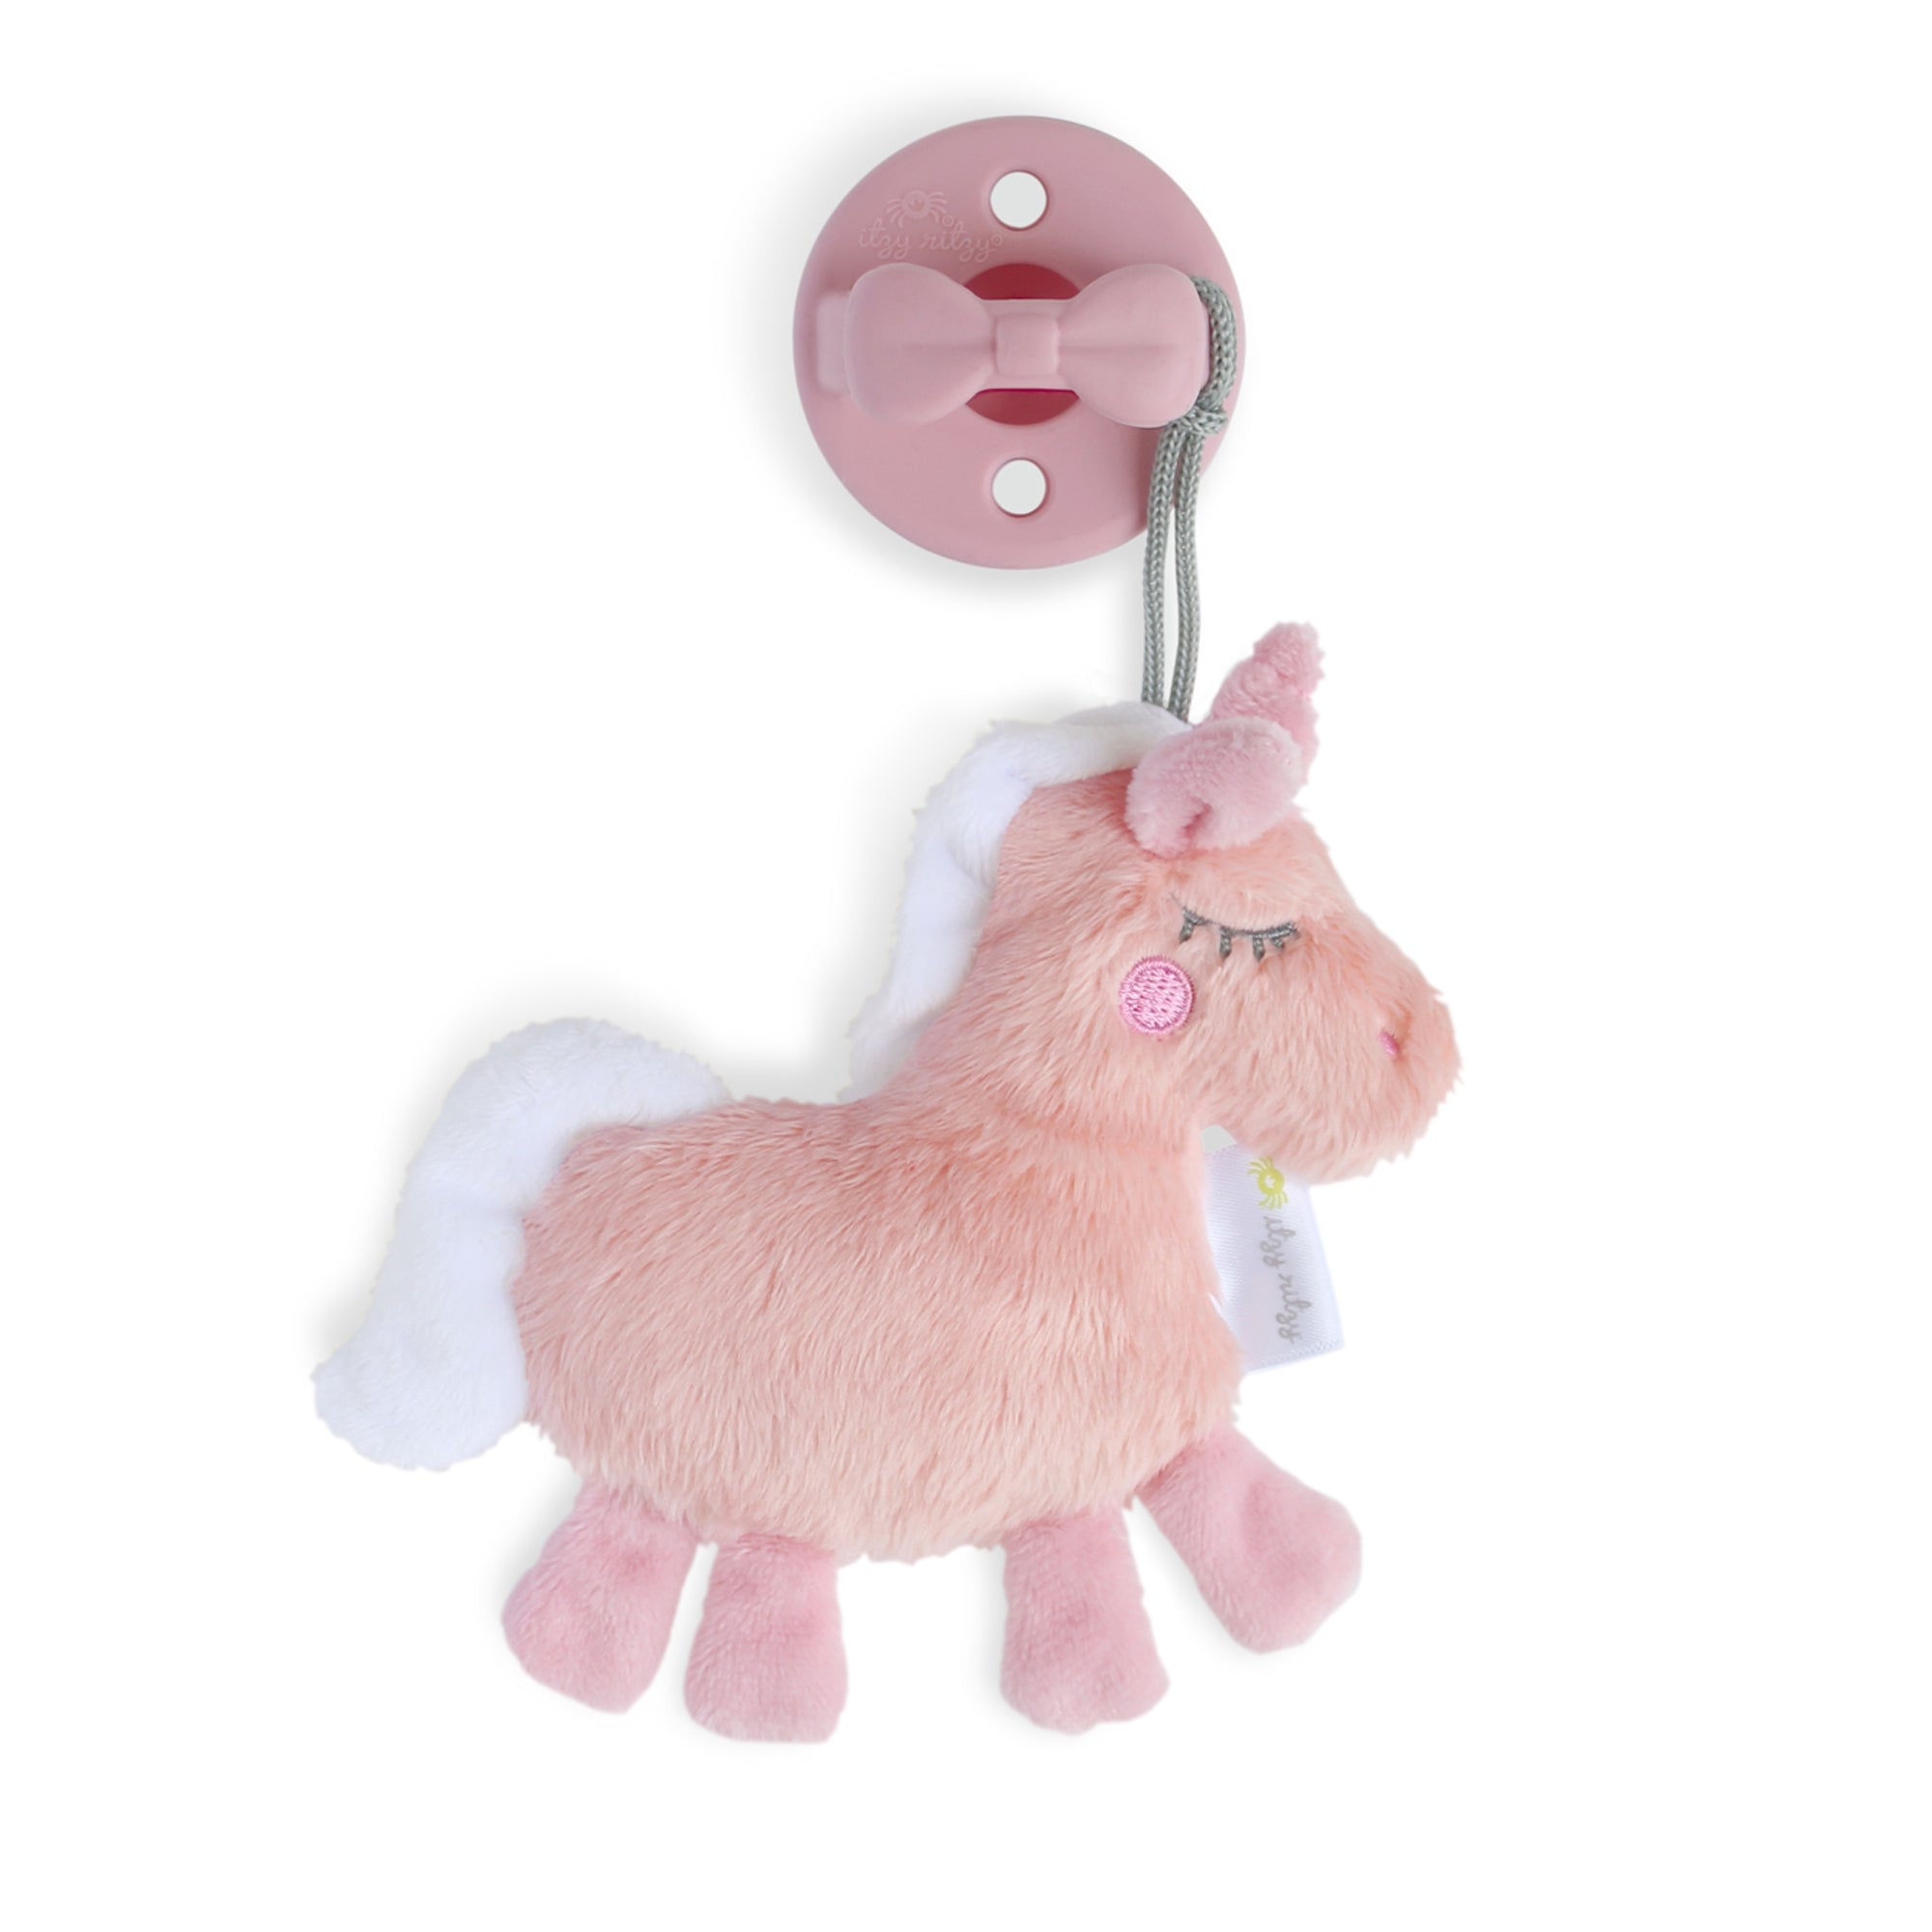 Sweetie Pal™ Plush & Pacifier - Unicorn